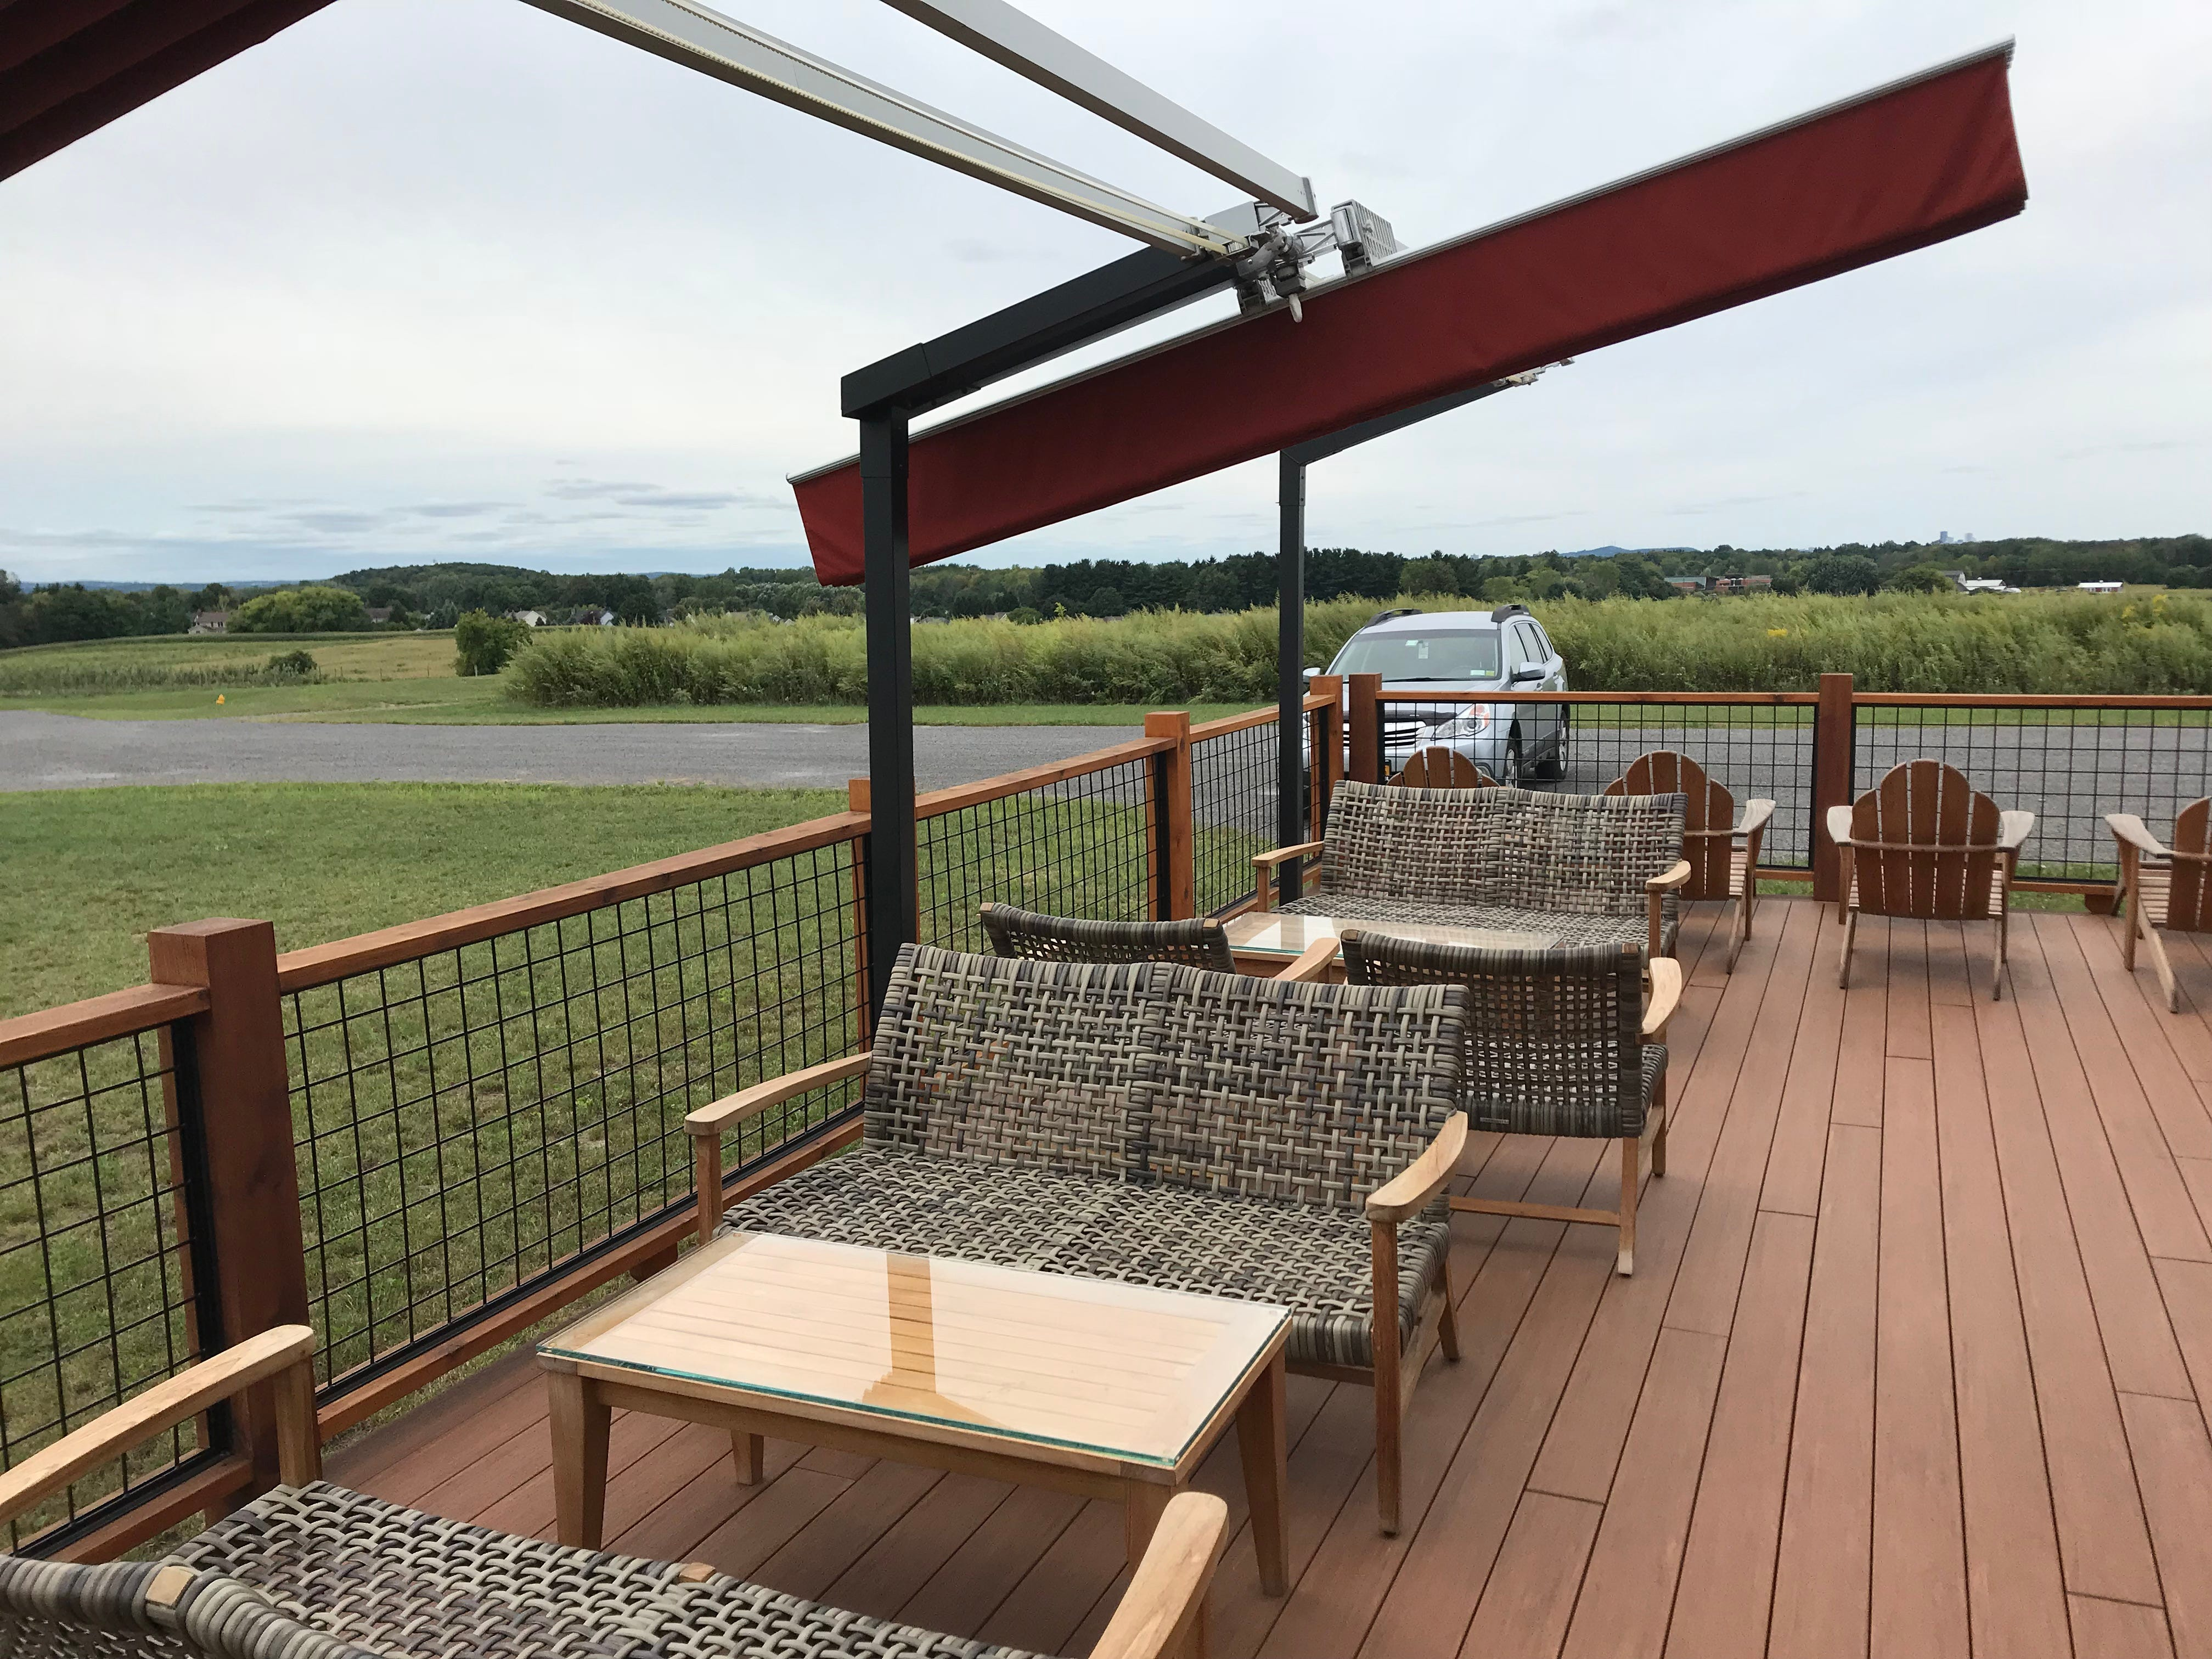 Prime outdoor deck seating at Oak & Apple Cidery.